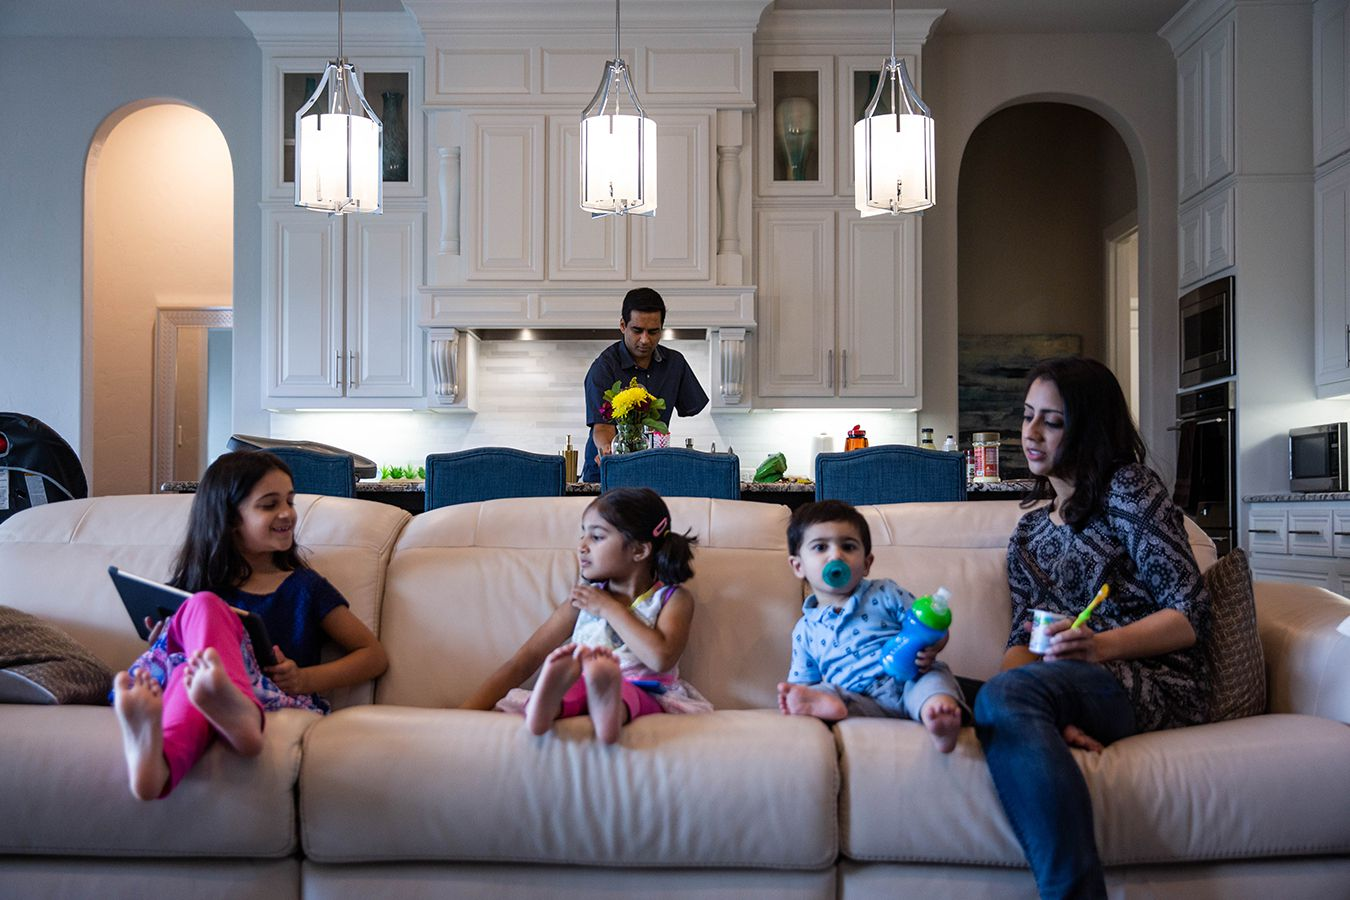 Naveed Khan cooks lunch for his wife, Ayesha, and children, Nazneen, 7, Yasmeen, 4, and Rehan, 1, in their home in Southlake.